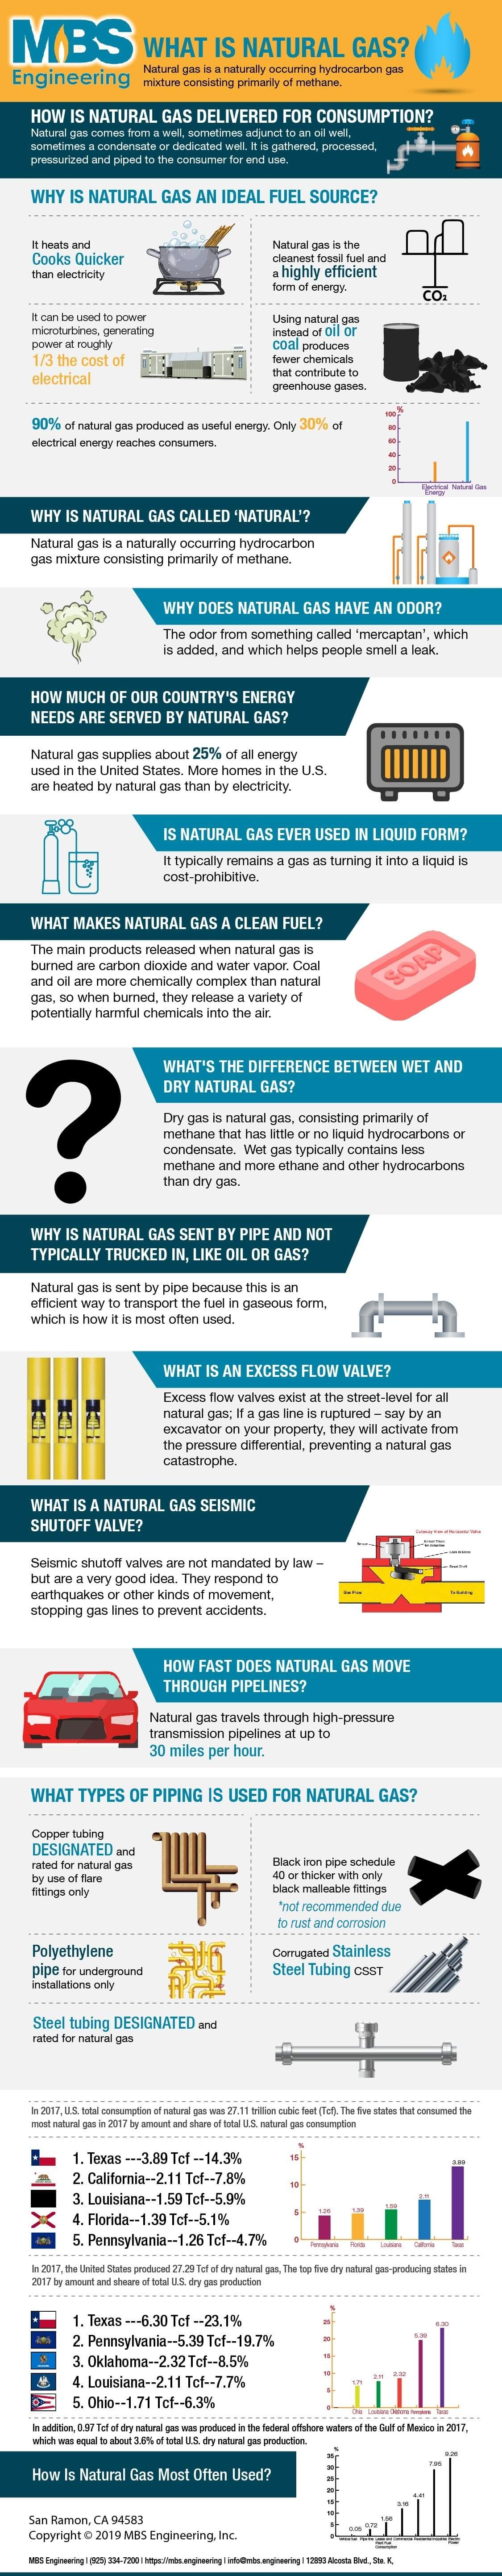 revised_natural_gas_basics-infographic-plaza